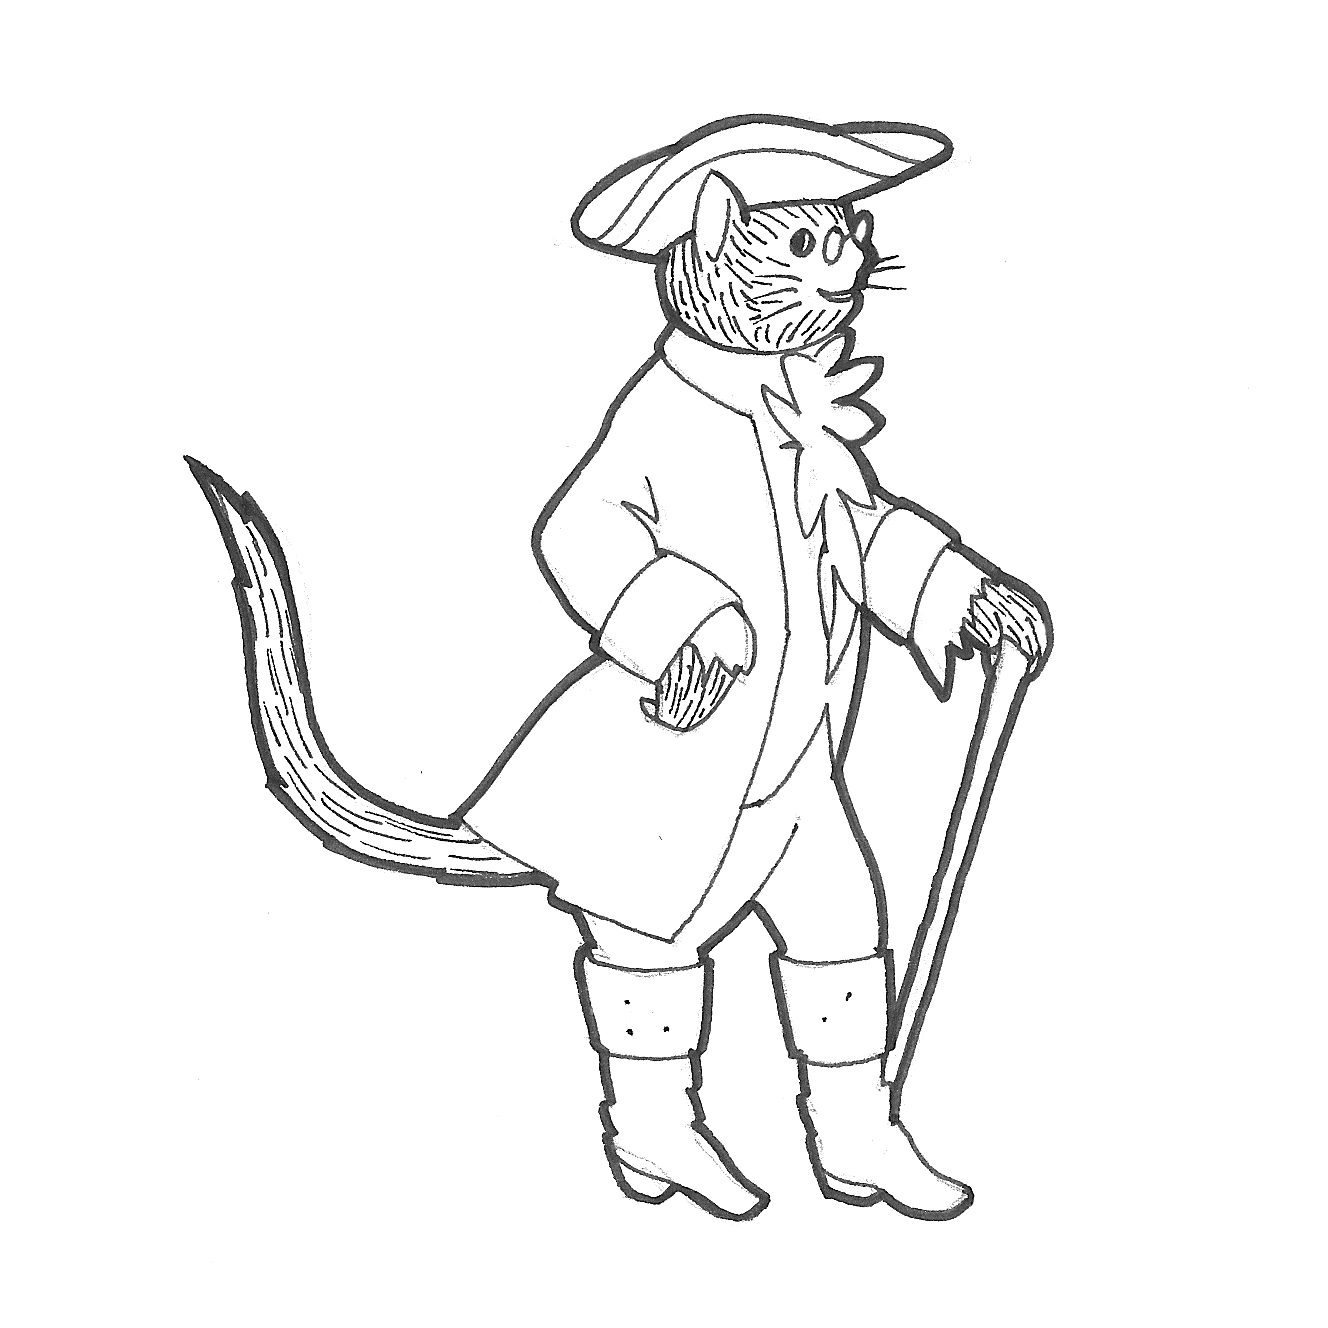 Puss in boots hoots loots roots doodles and jots for Kitty softpaws coloring pages